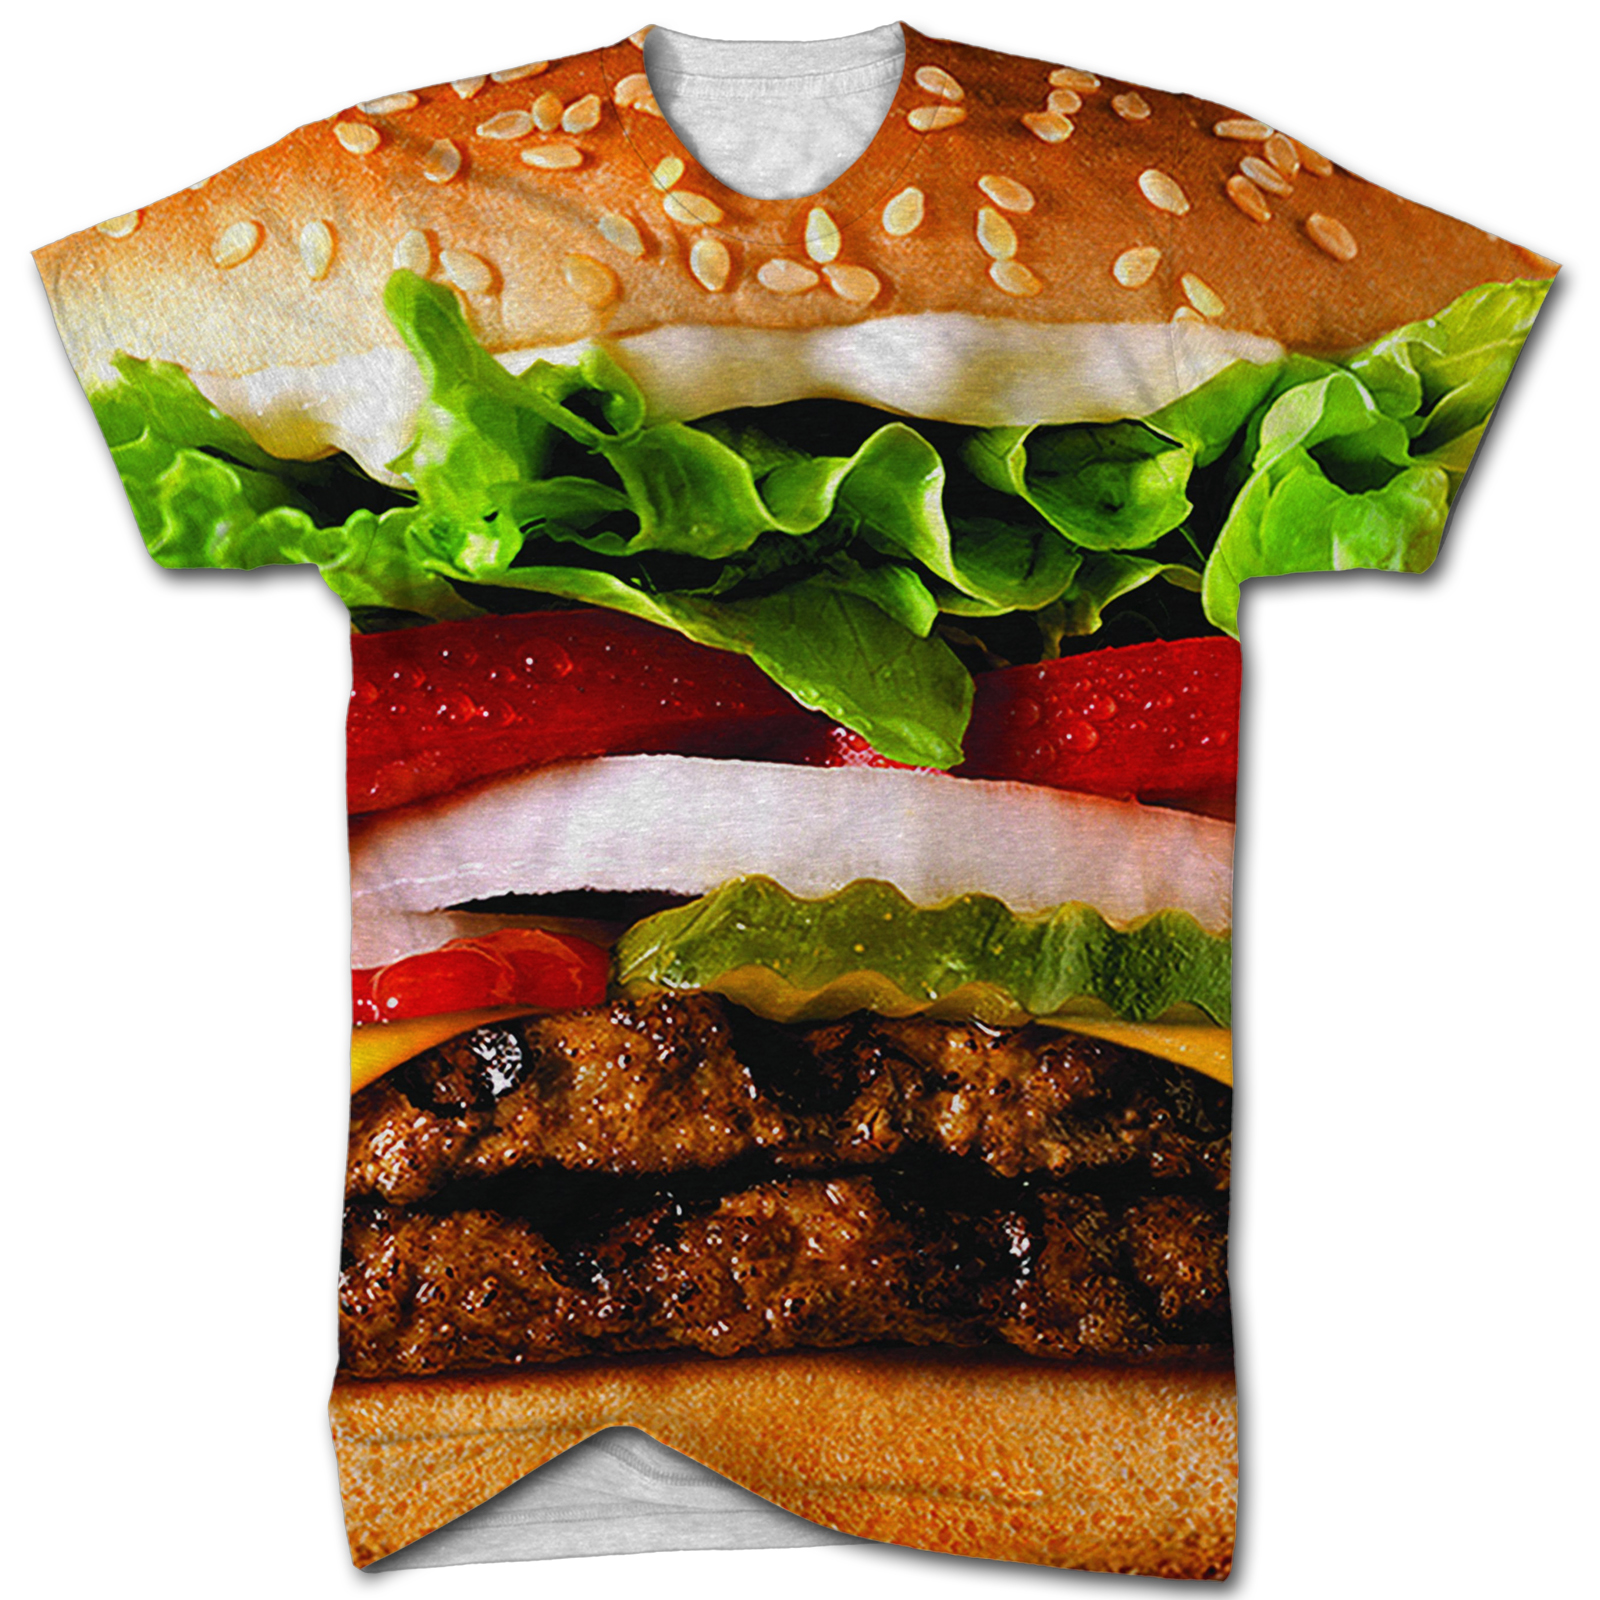 Burger all over print t shirt